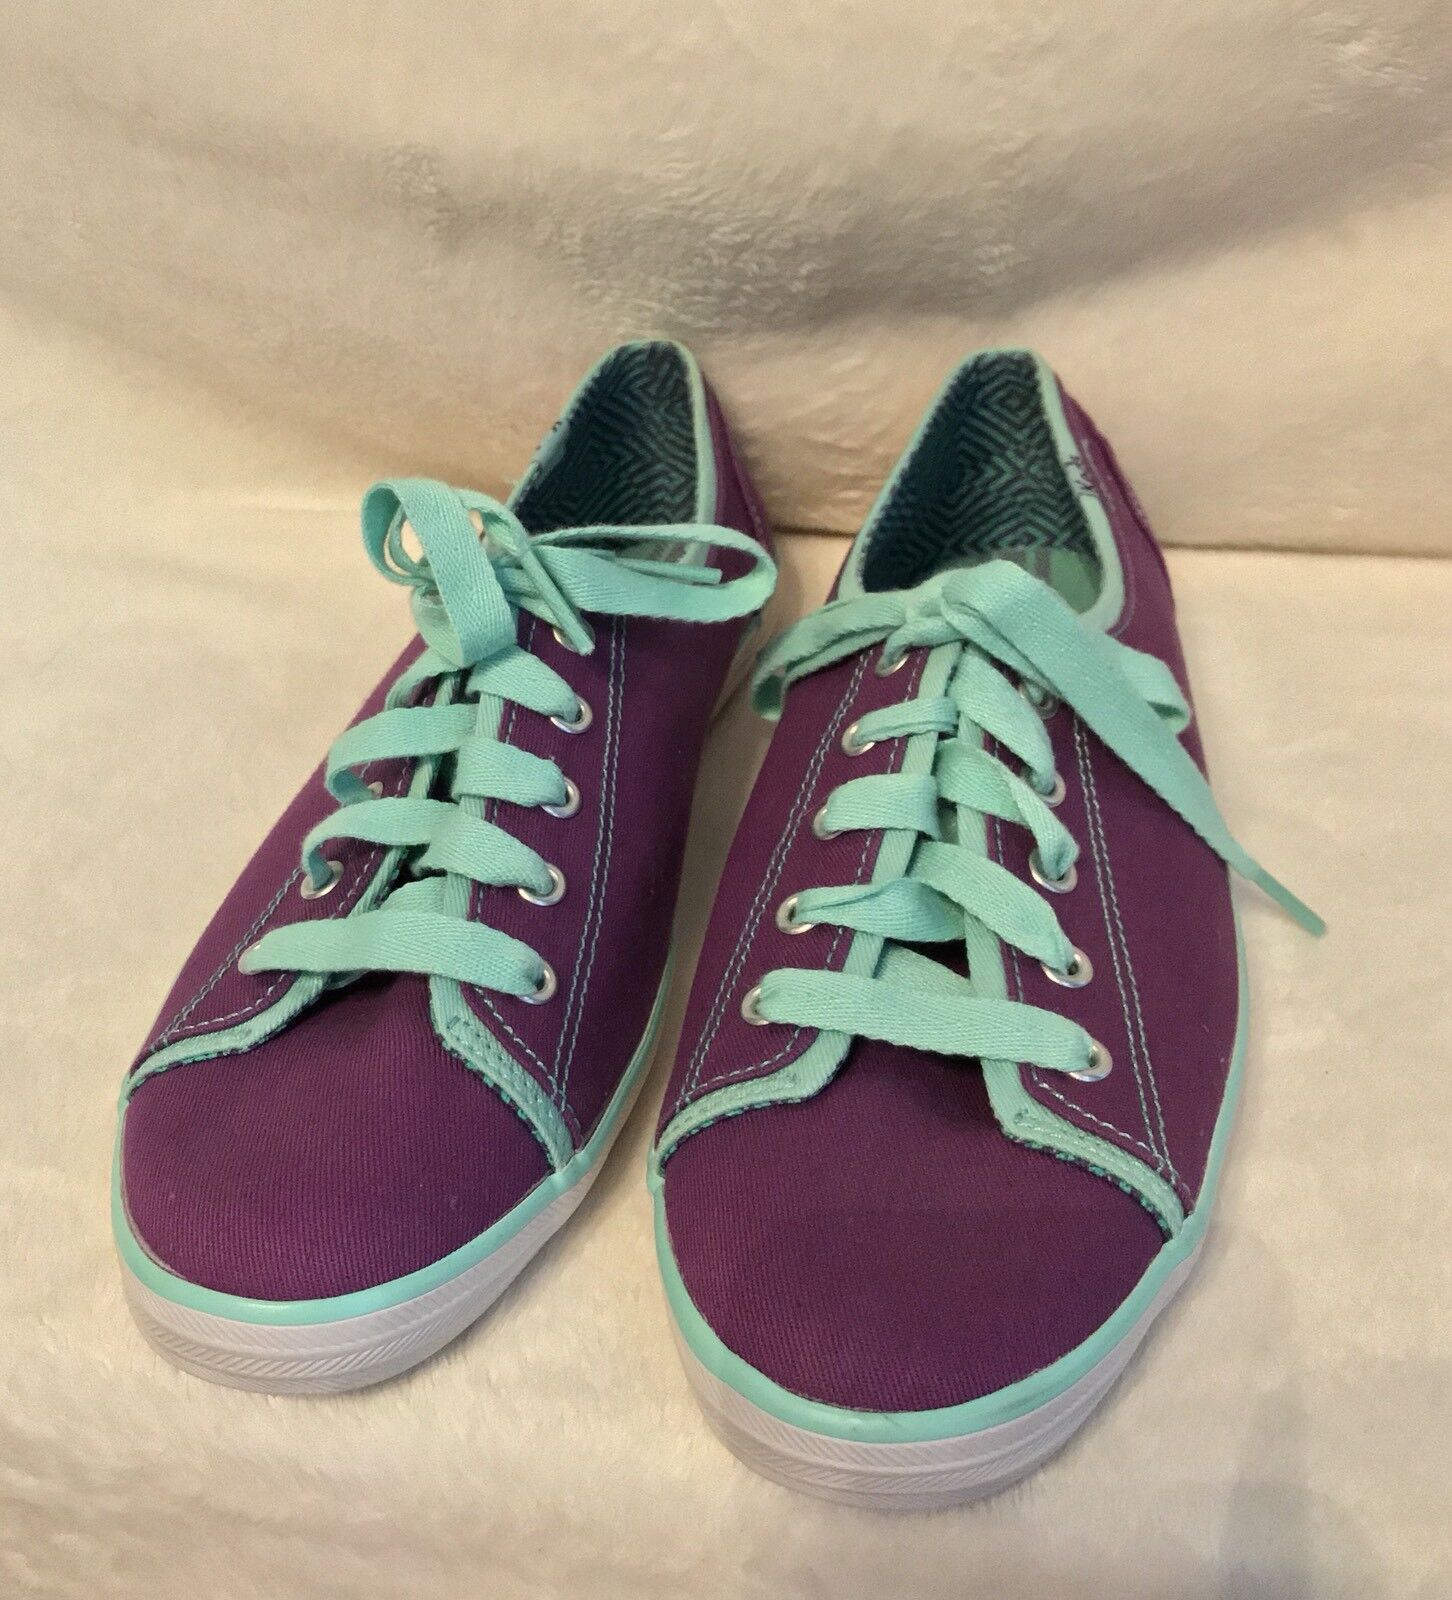 NEW KEDS Purple Canvas, Turquoise bluee Trim Tennis shoes Sneakers shoes  - 8.5